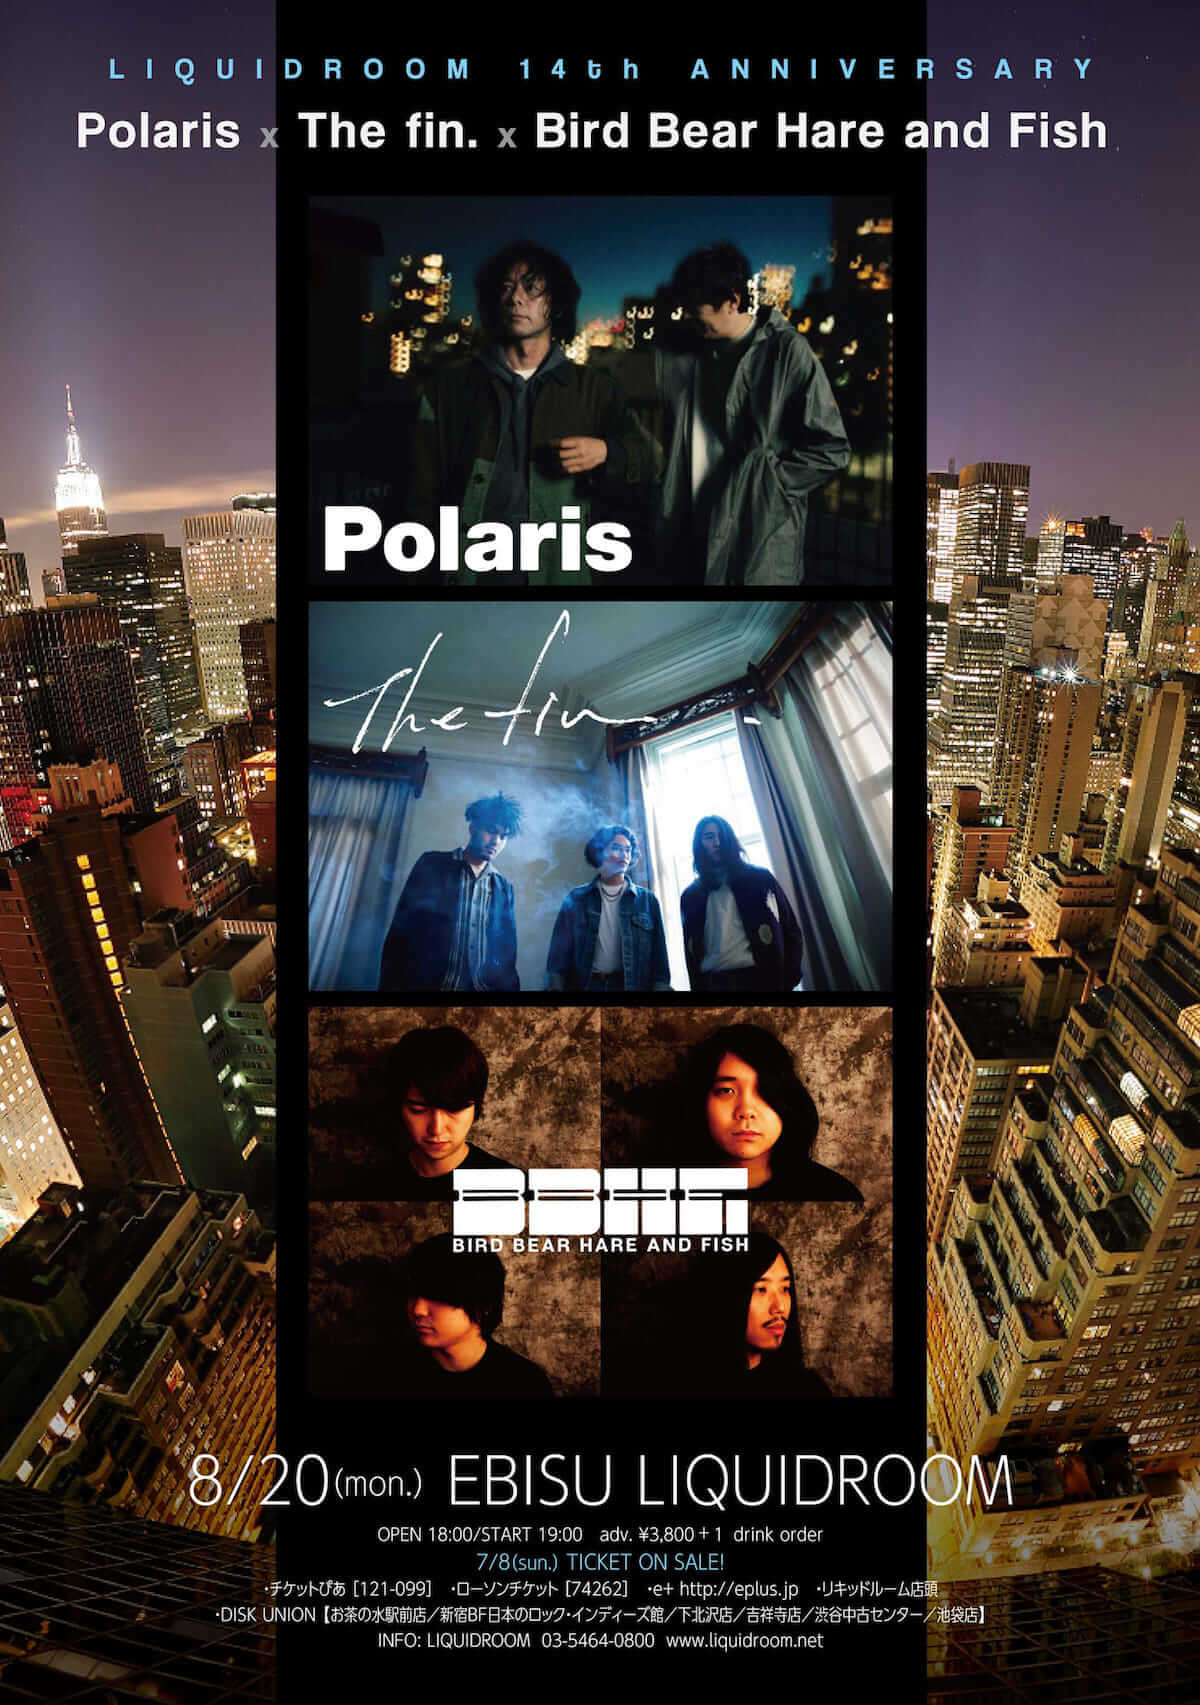 LIQUIDROOM14周年公演でPolaris・The fin.・Bird Bear Hare and Fishの3マンが決定 music180618_liquidroom_1-1200x1705